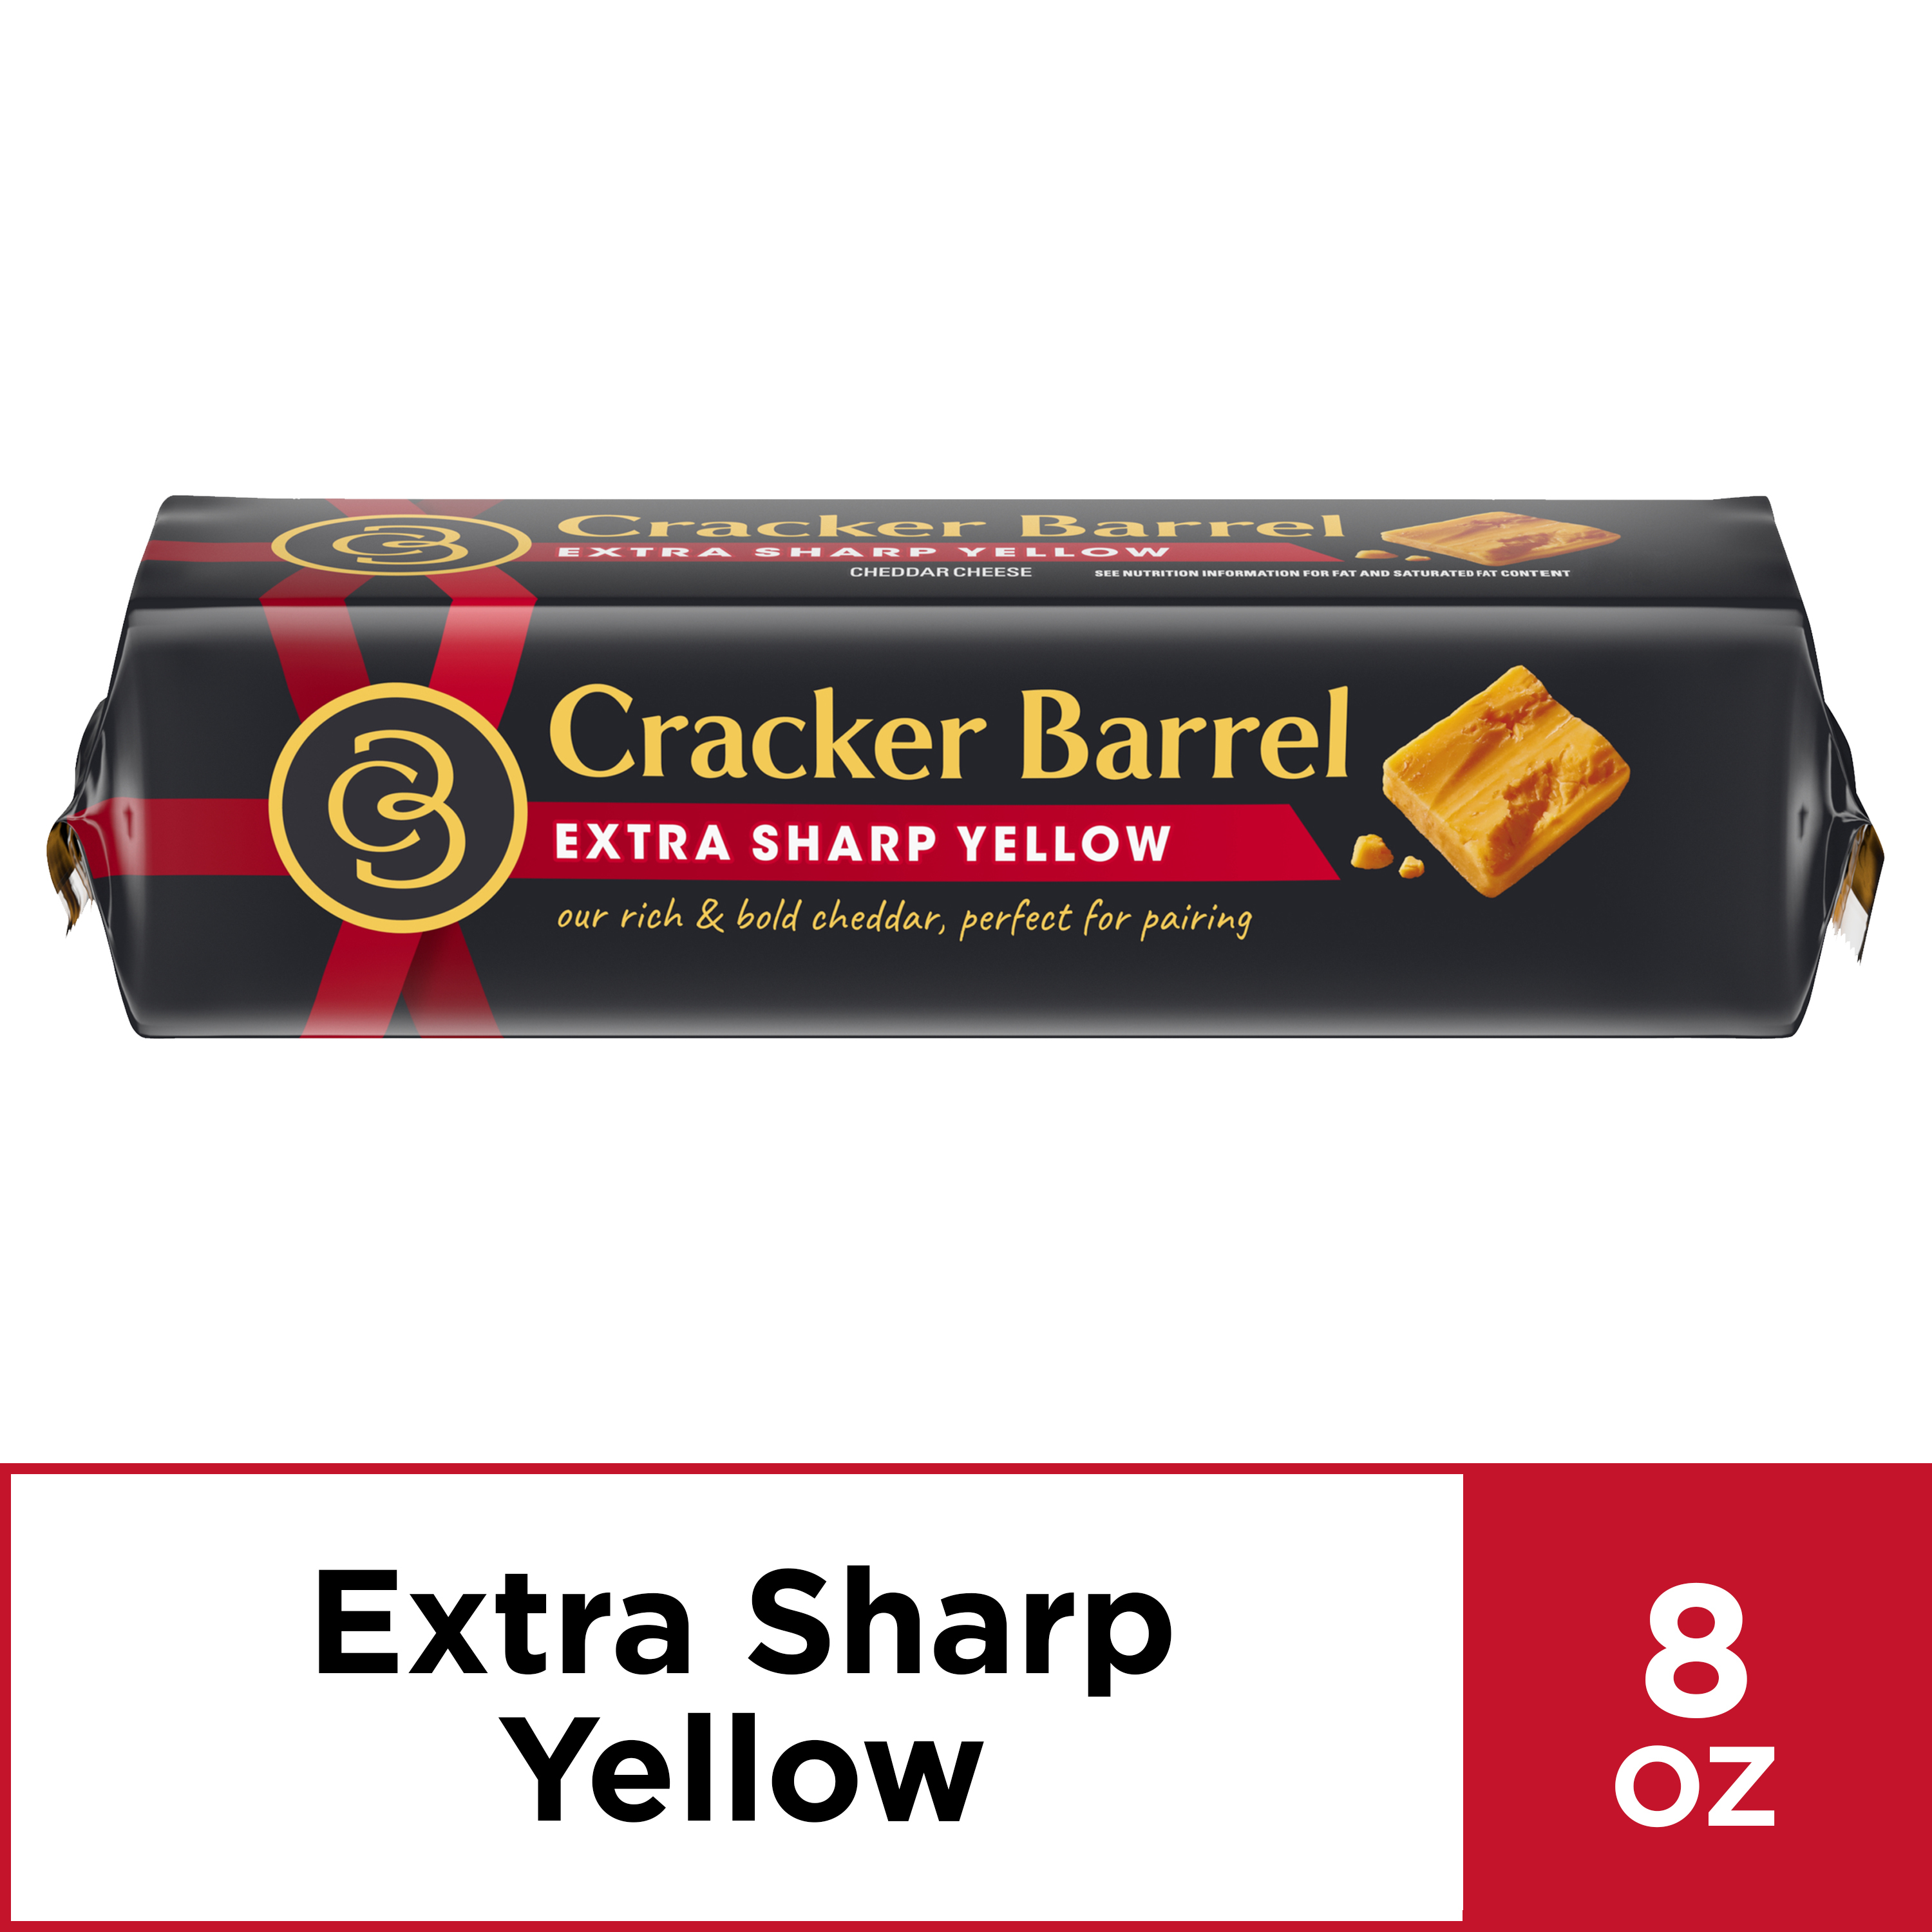 Cracker Barrel Cheese Chunk, Extra Sharp Cheddar Cheese, 8 oz Wrapper